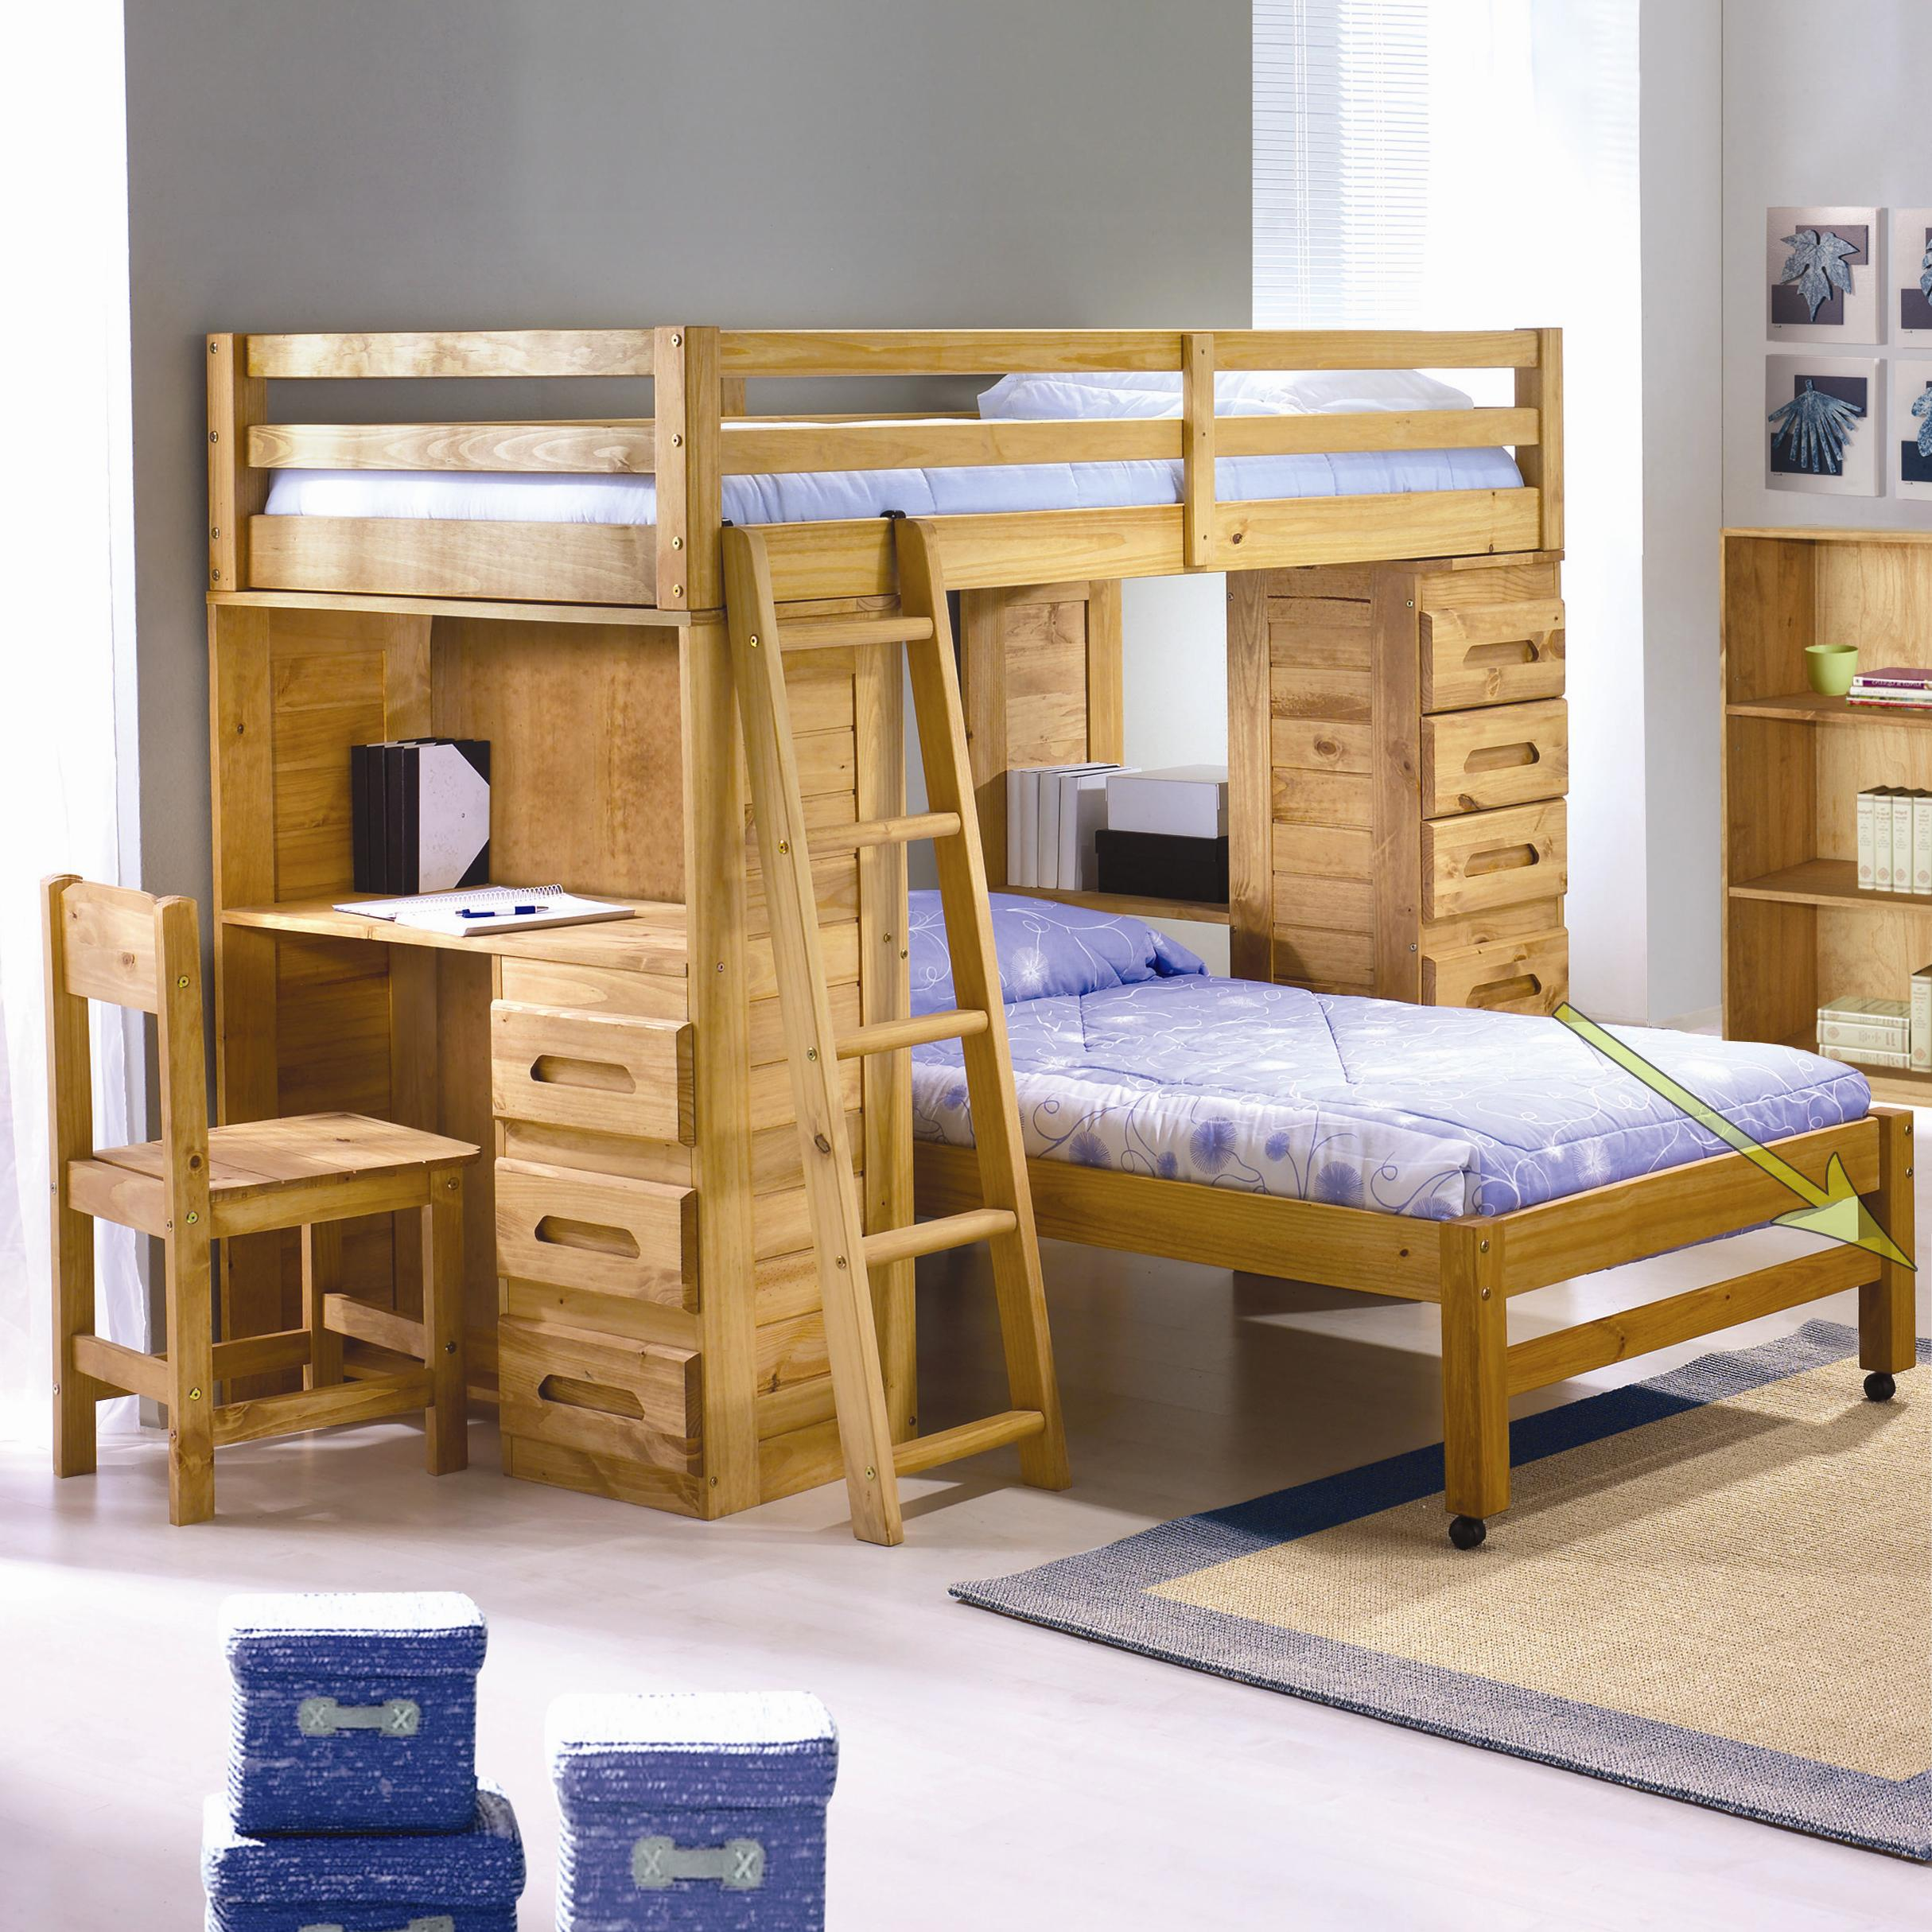 Girl Room Furniture Bunk Beds The Best Quality Home Design